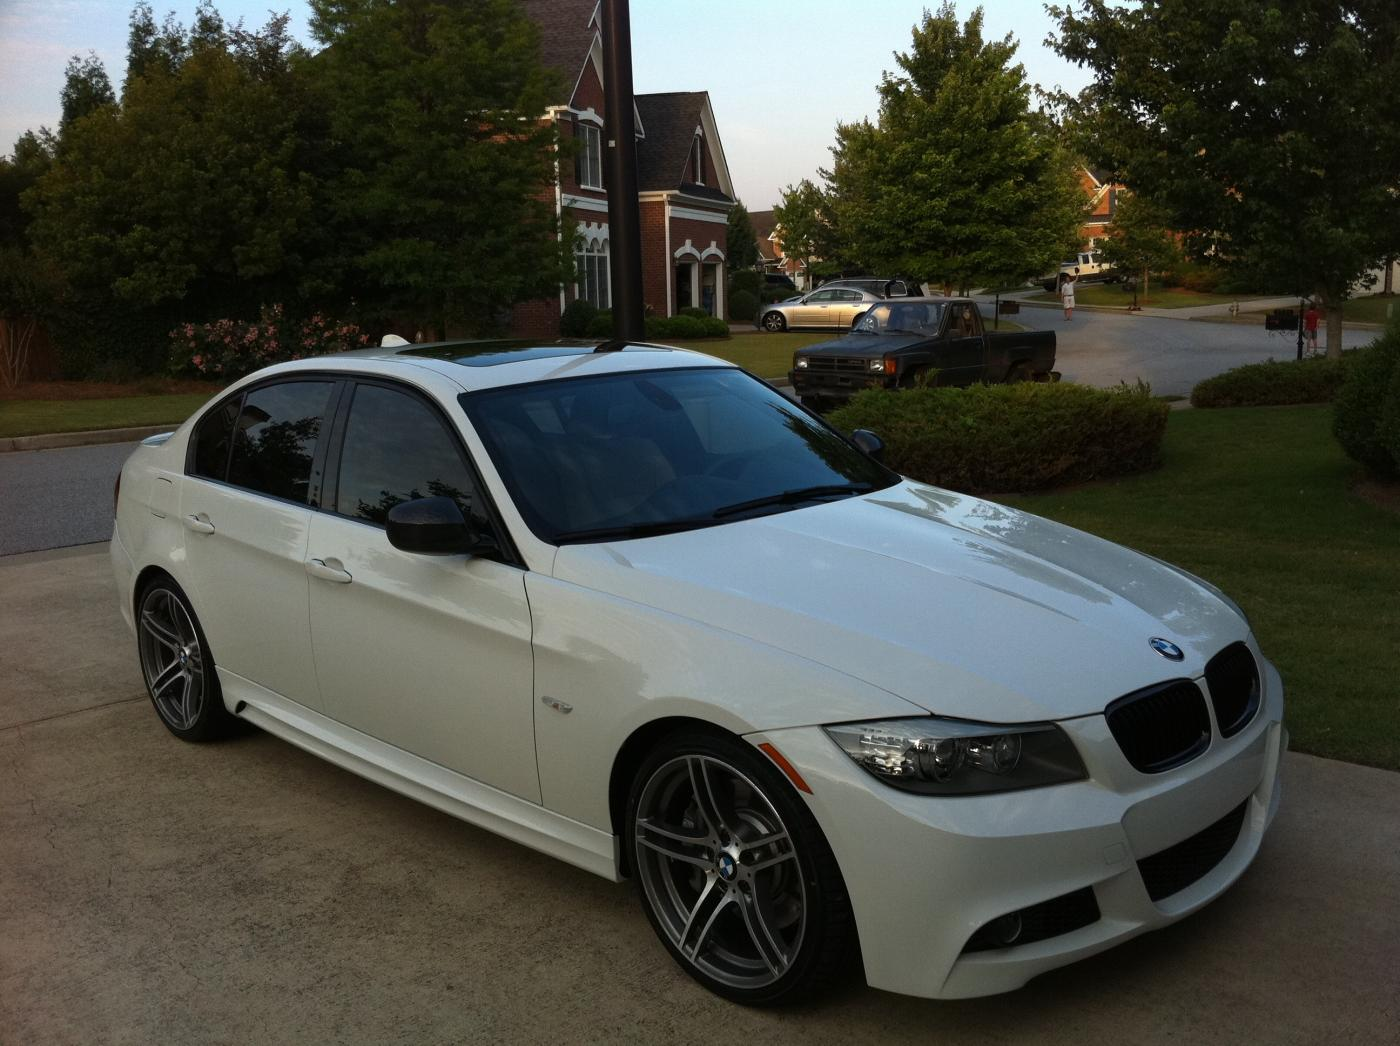 Couple Pics Of My Car - 355i bmw